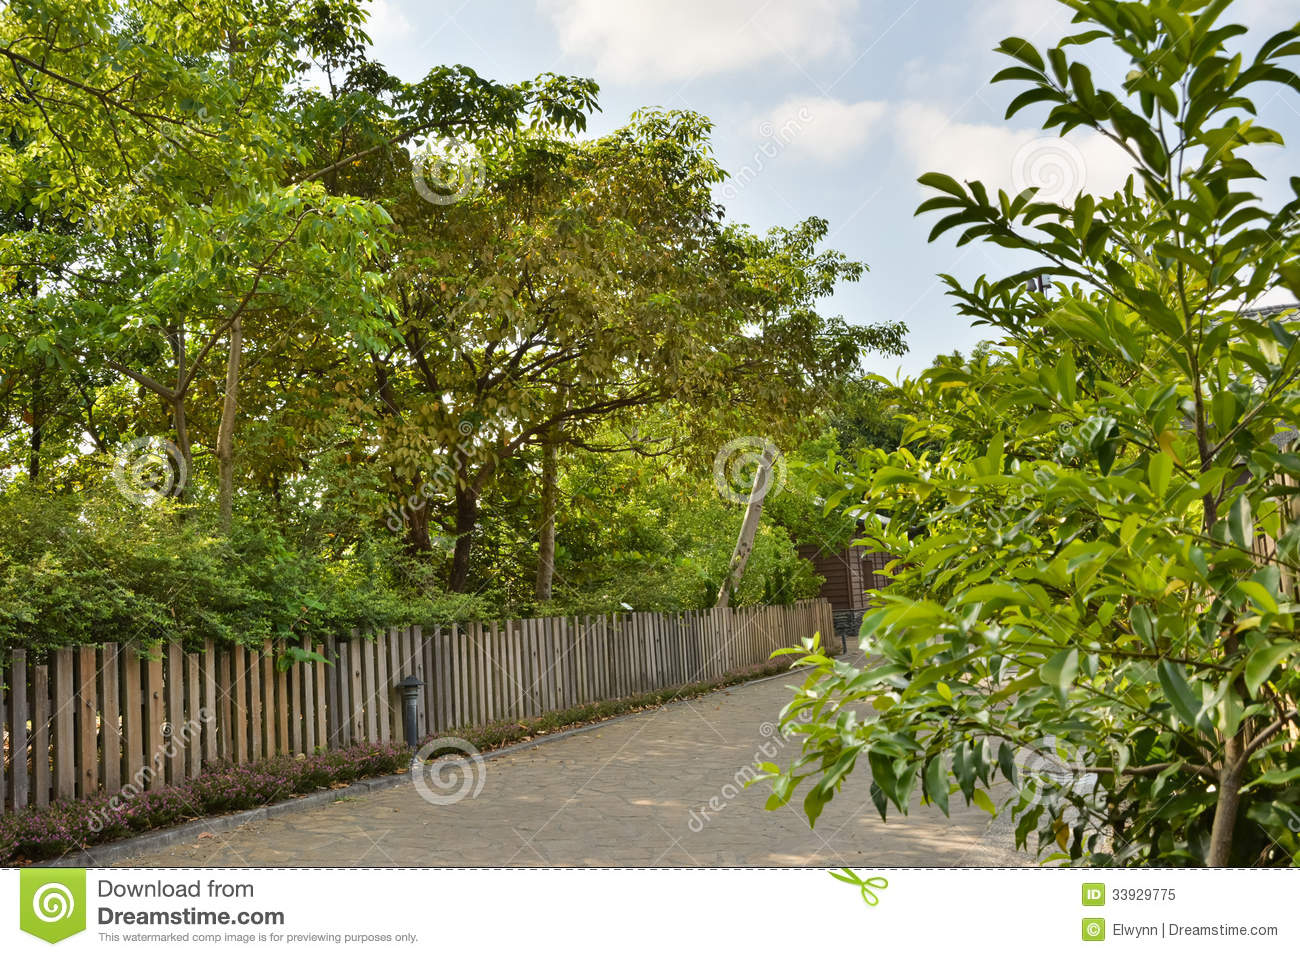 Country road along a wooden fence stock image of